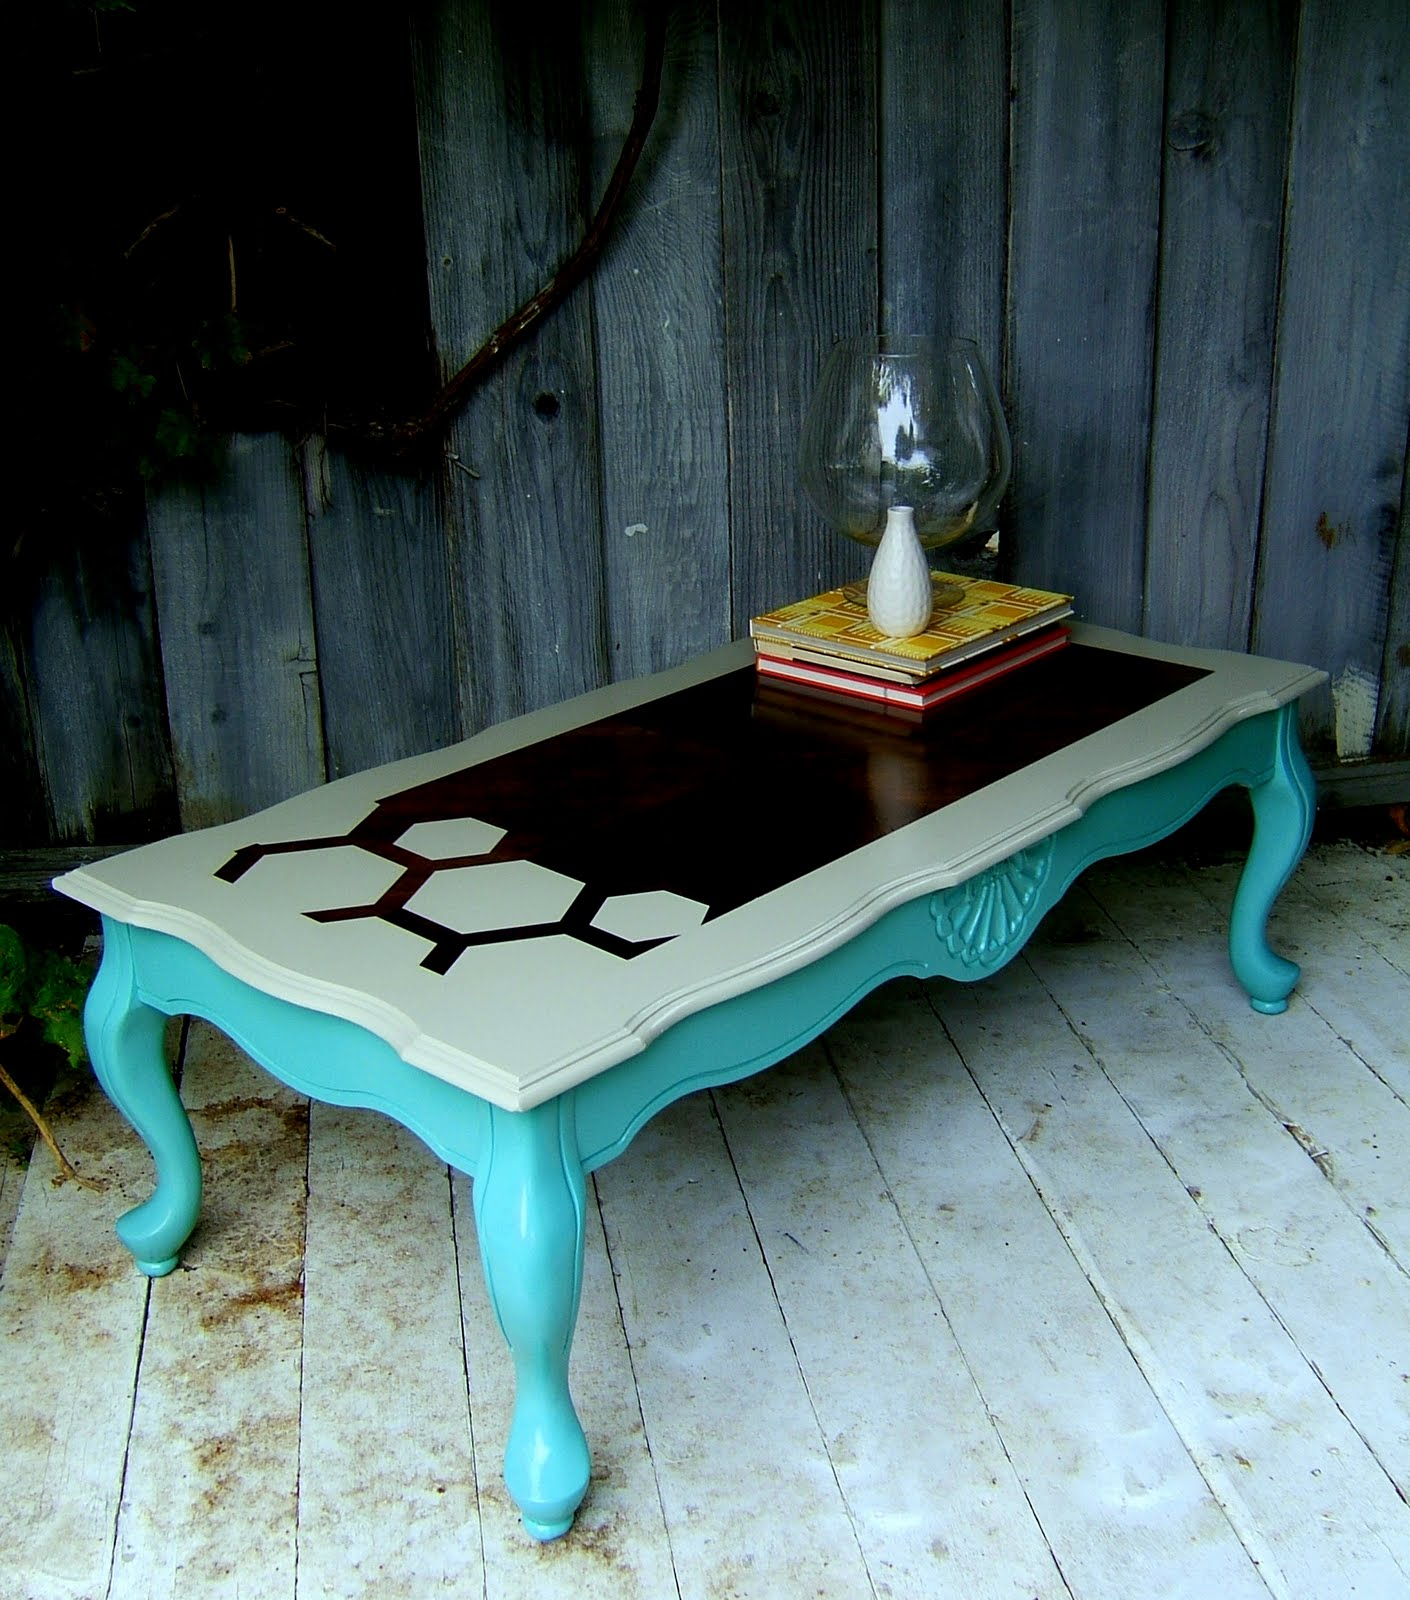 Post a comment for Teal coffee table